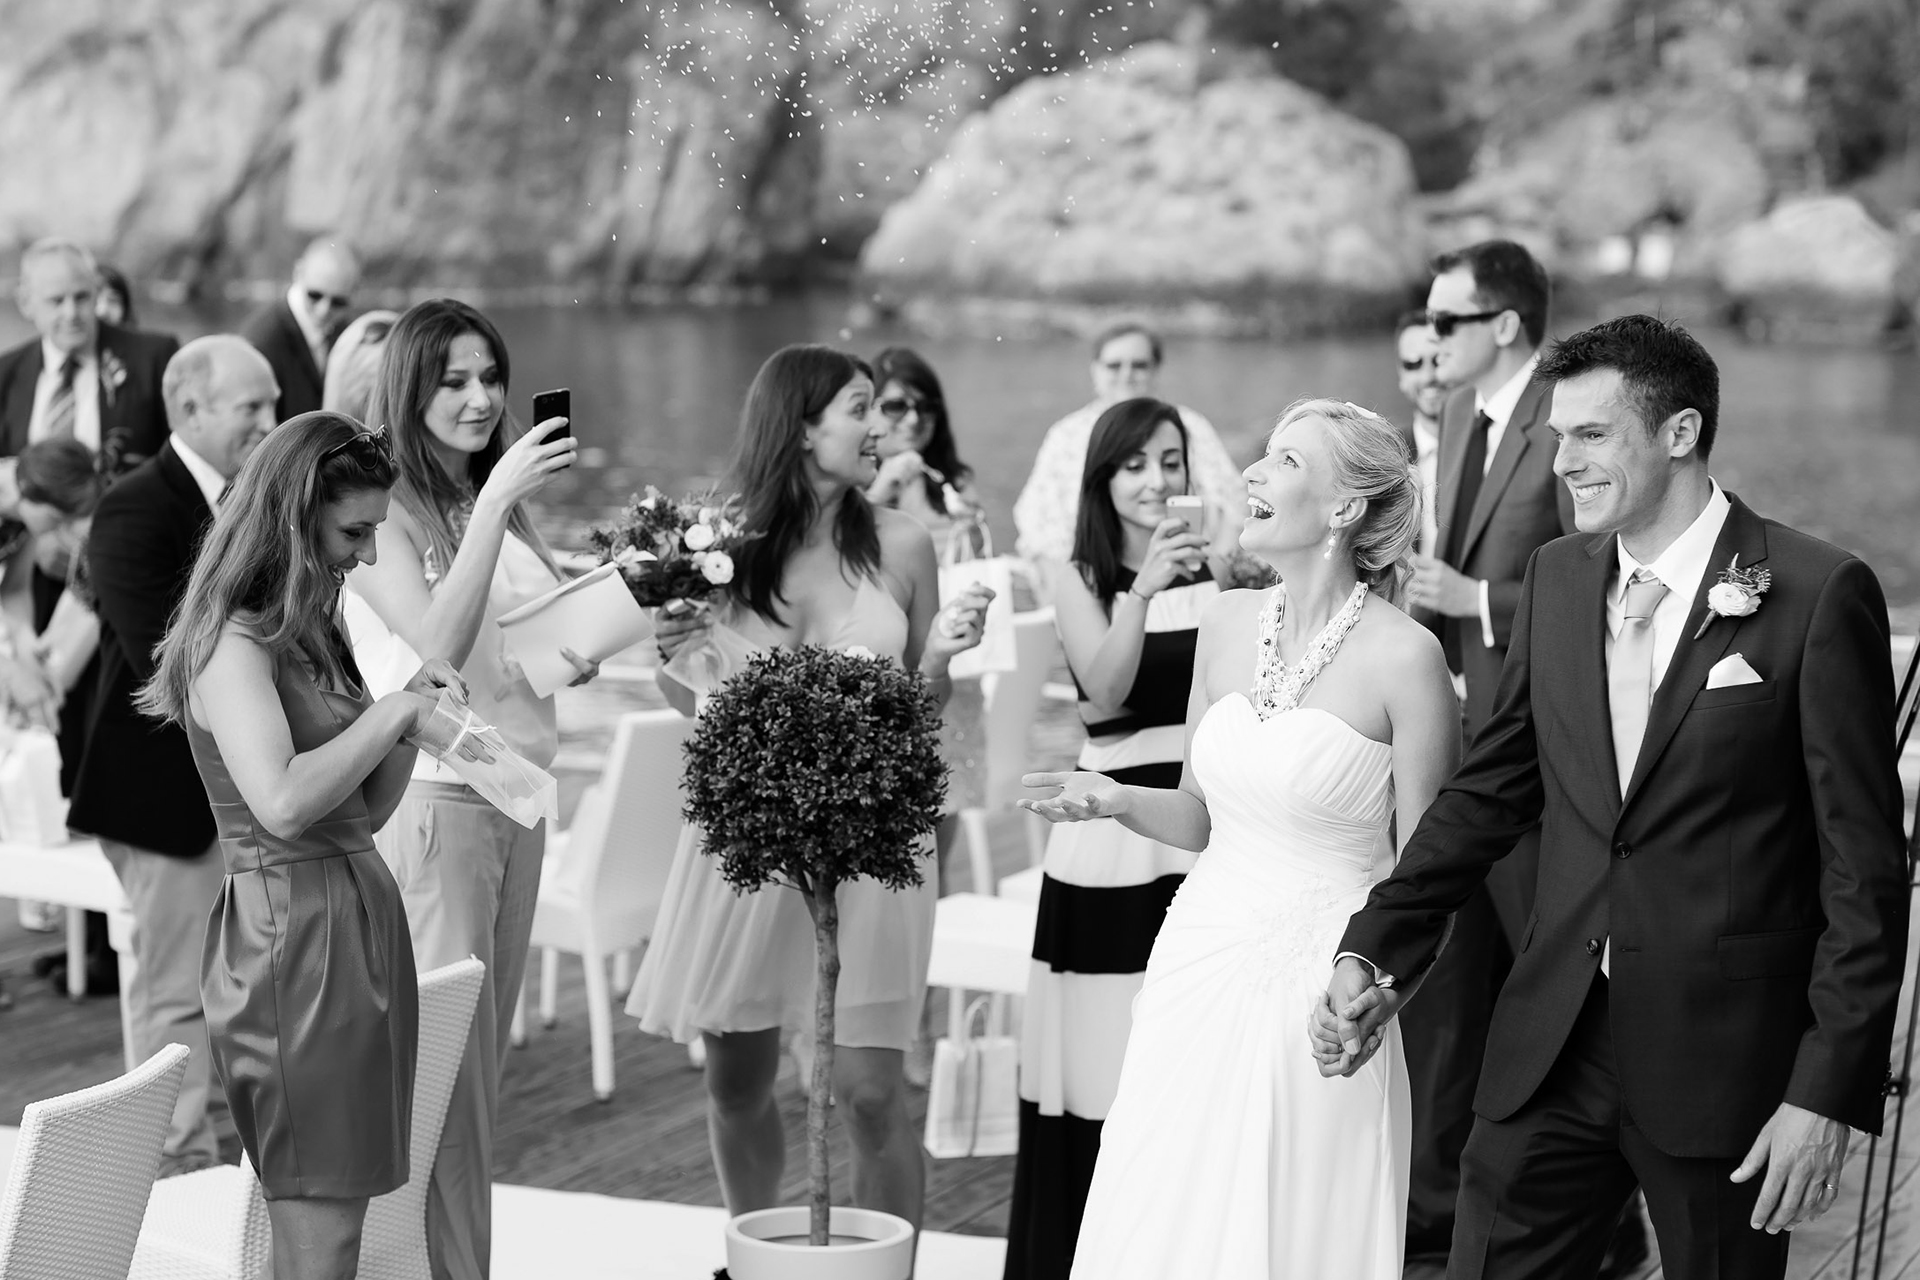 Sicily, Italy Beach Wedding Pictures | A joyful moment of the spouses with their friends